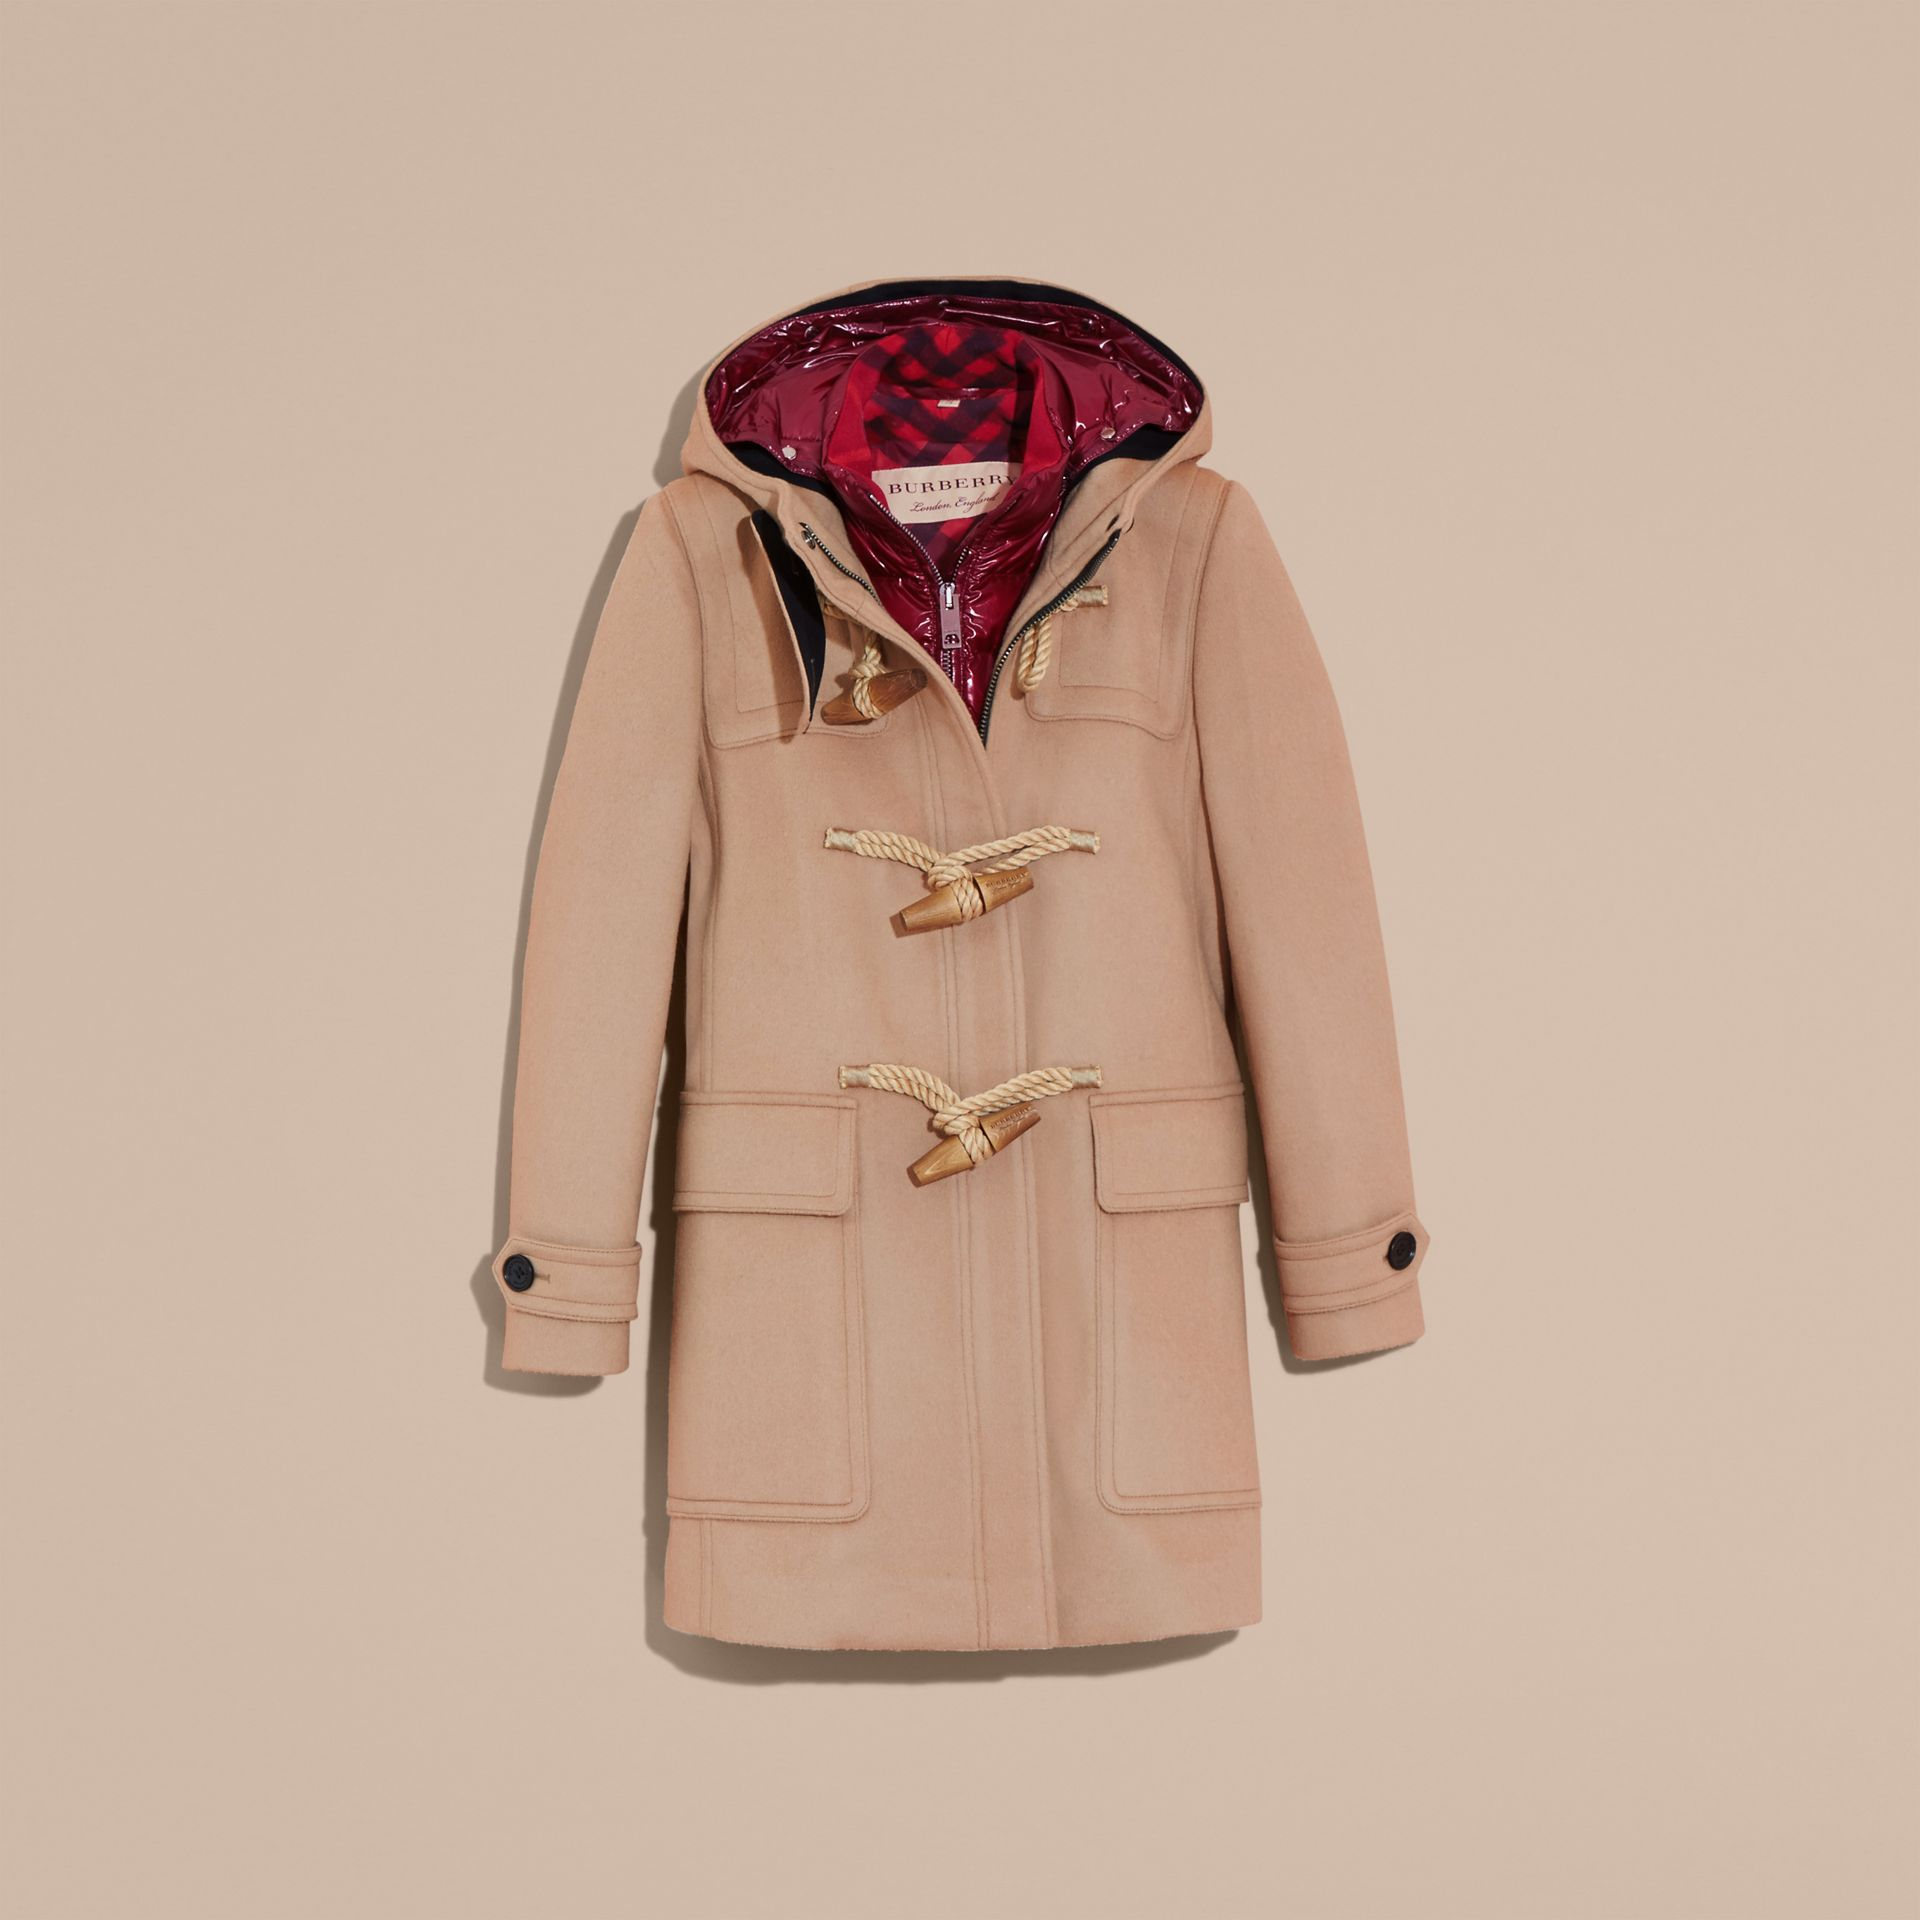 Camel Wool Duffle Coat with Detachable Hooded Down-filled Warmer Camel - ギャラリーイメージ 4